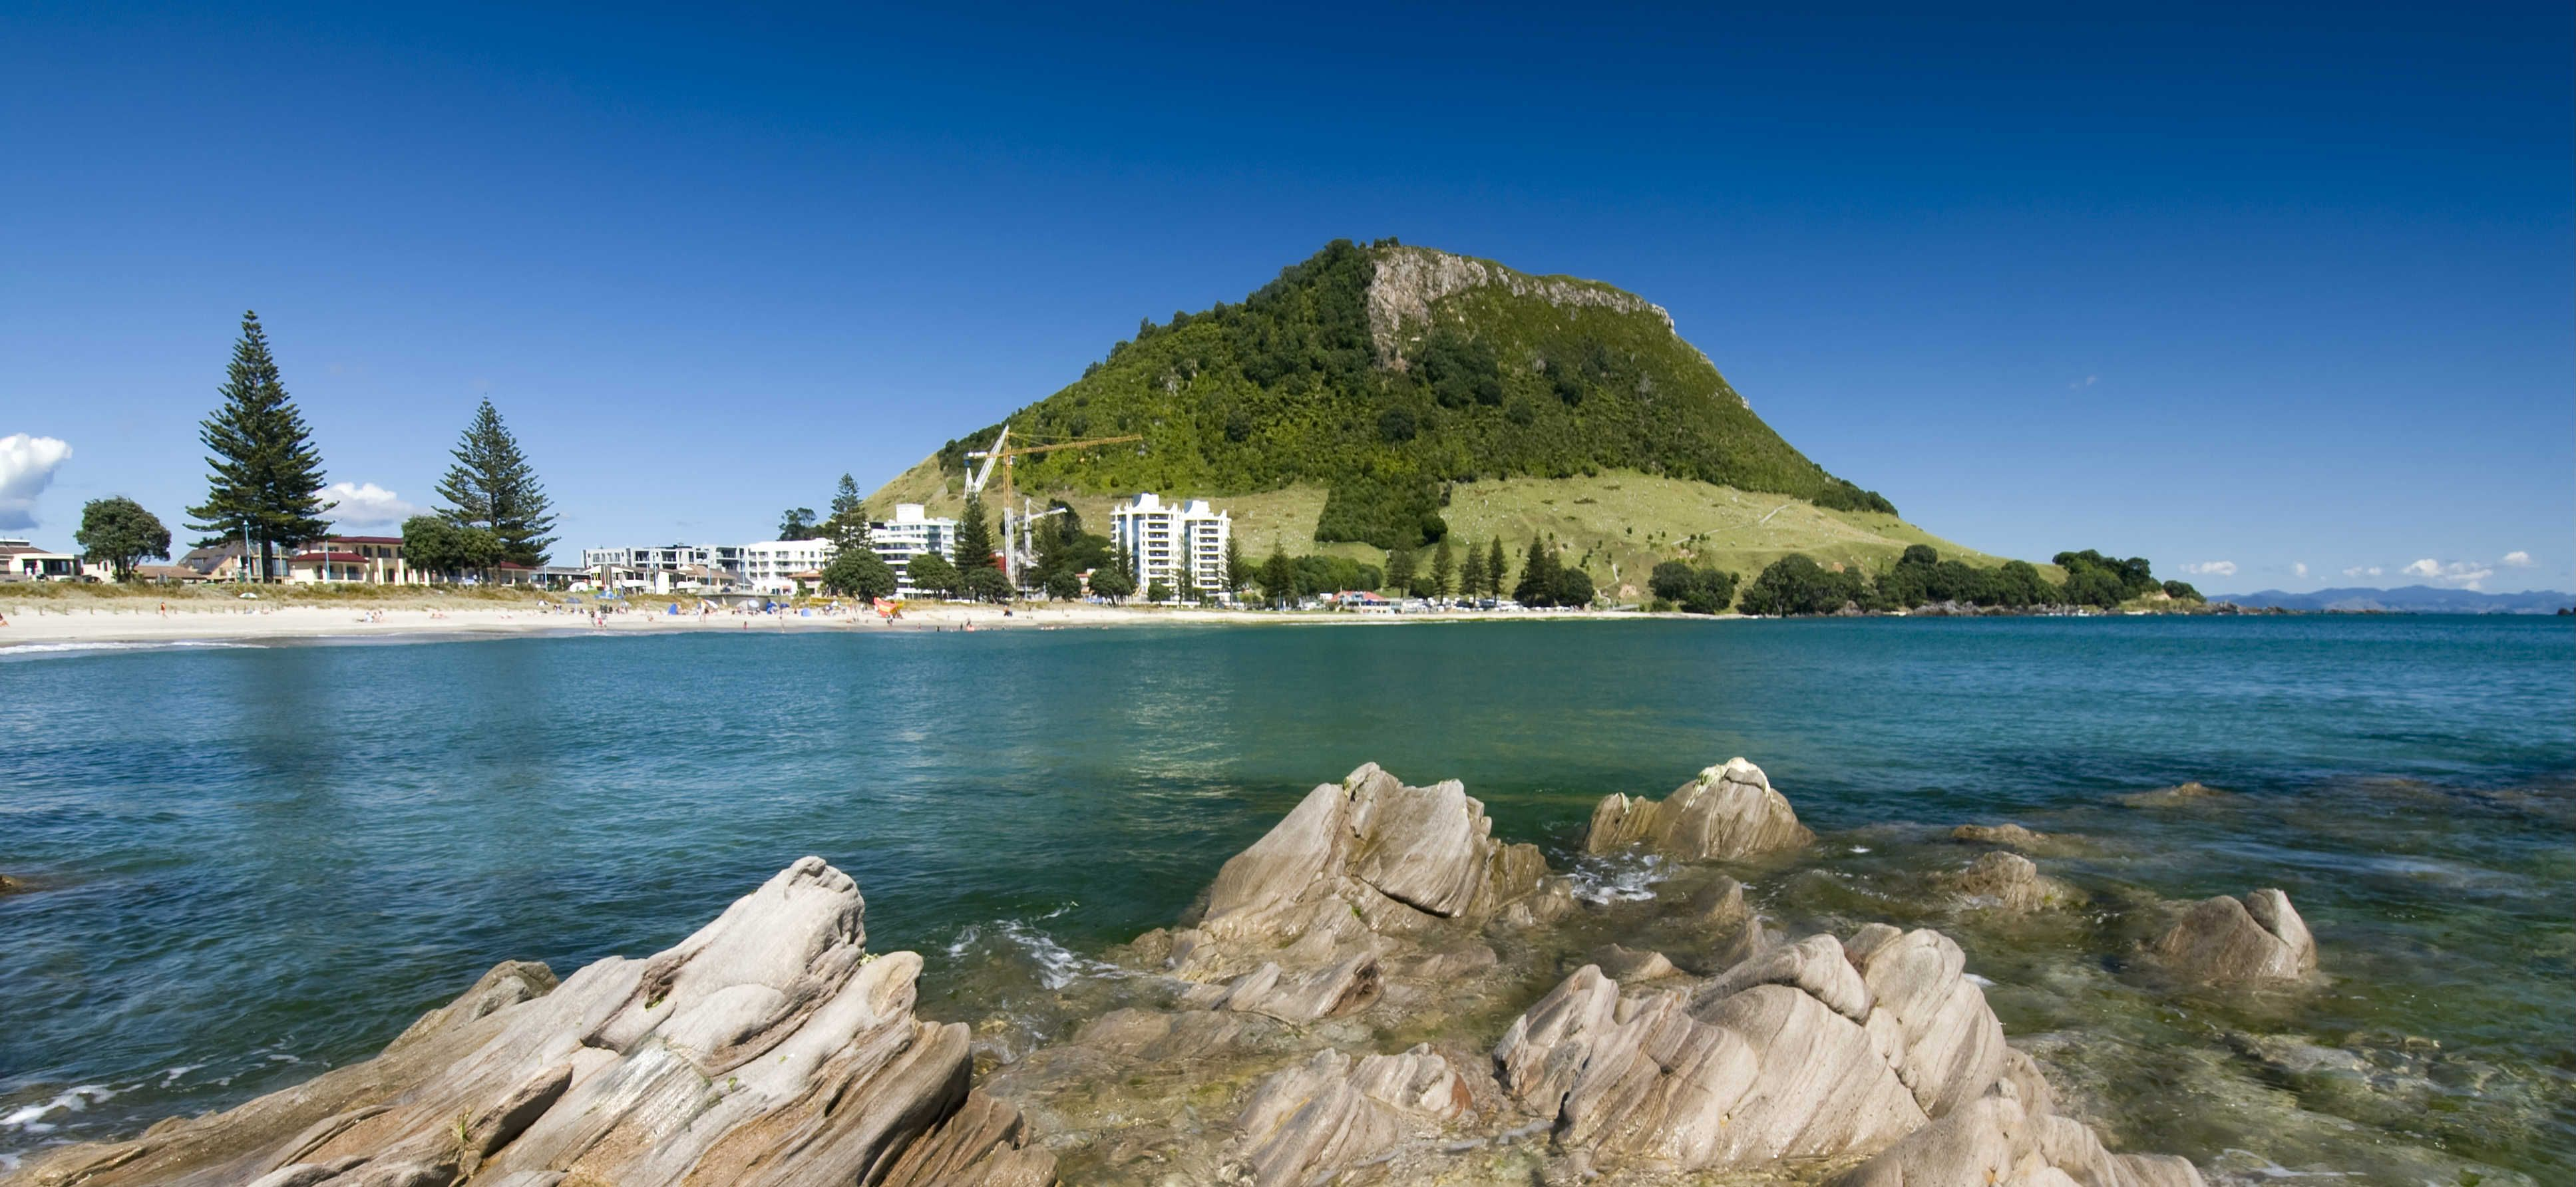 Tauranga, New Zealand Celebrity cruises, Vacation plan